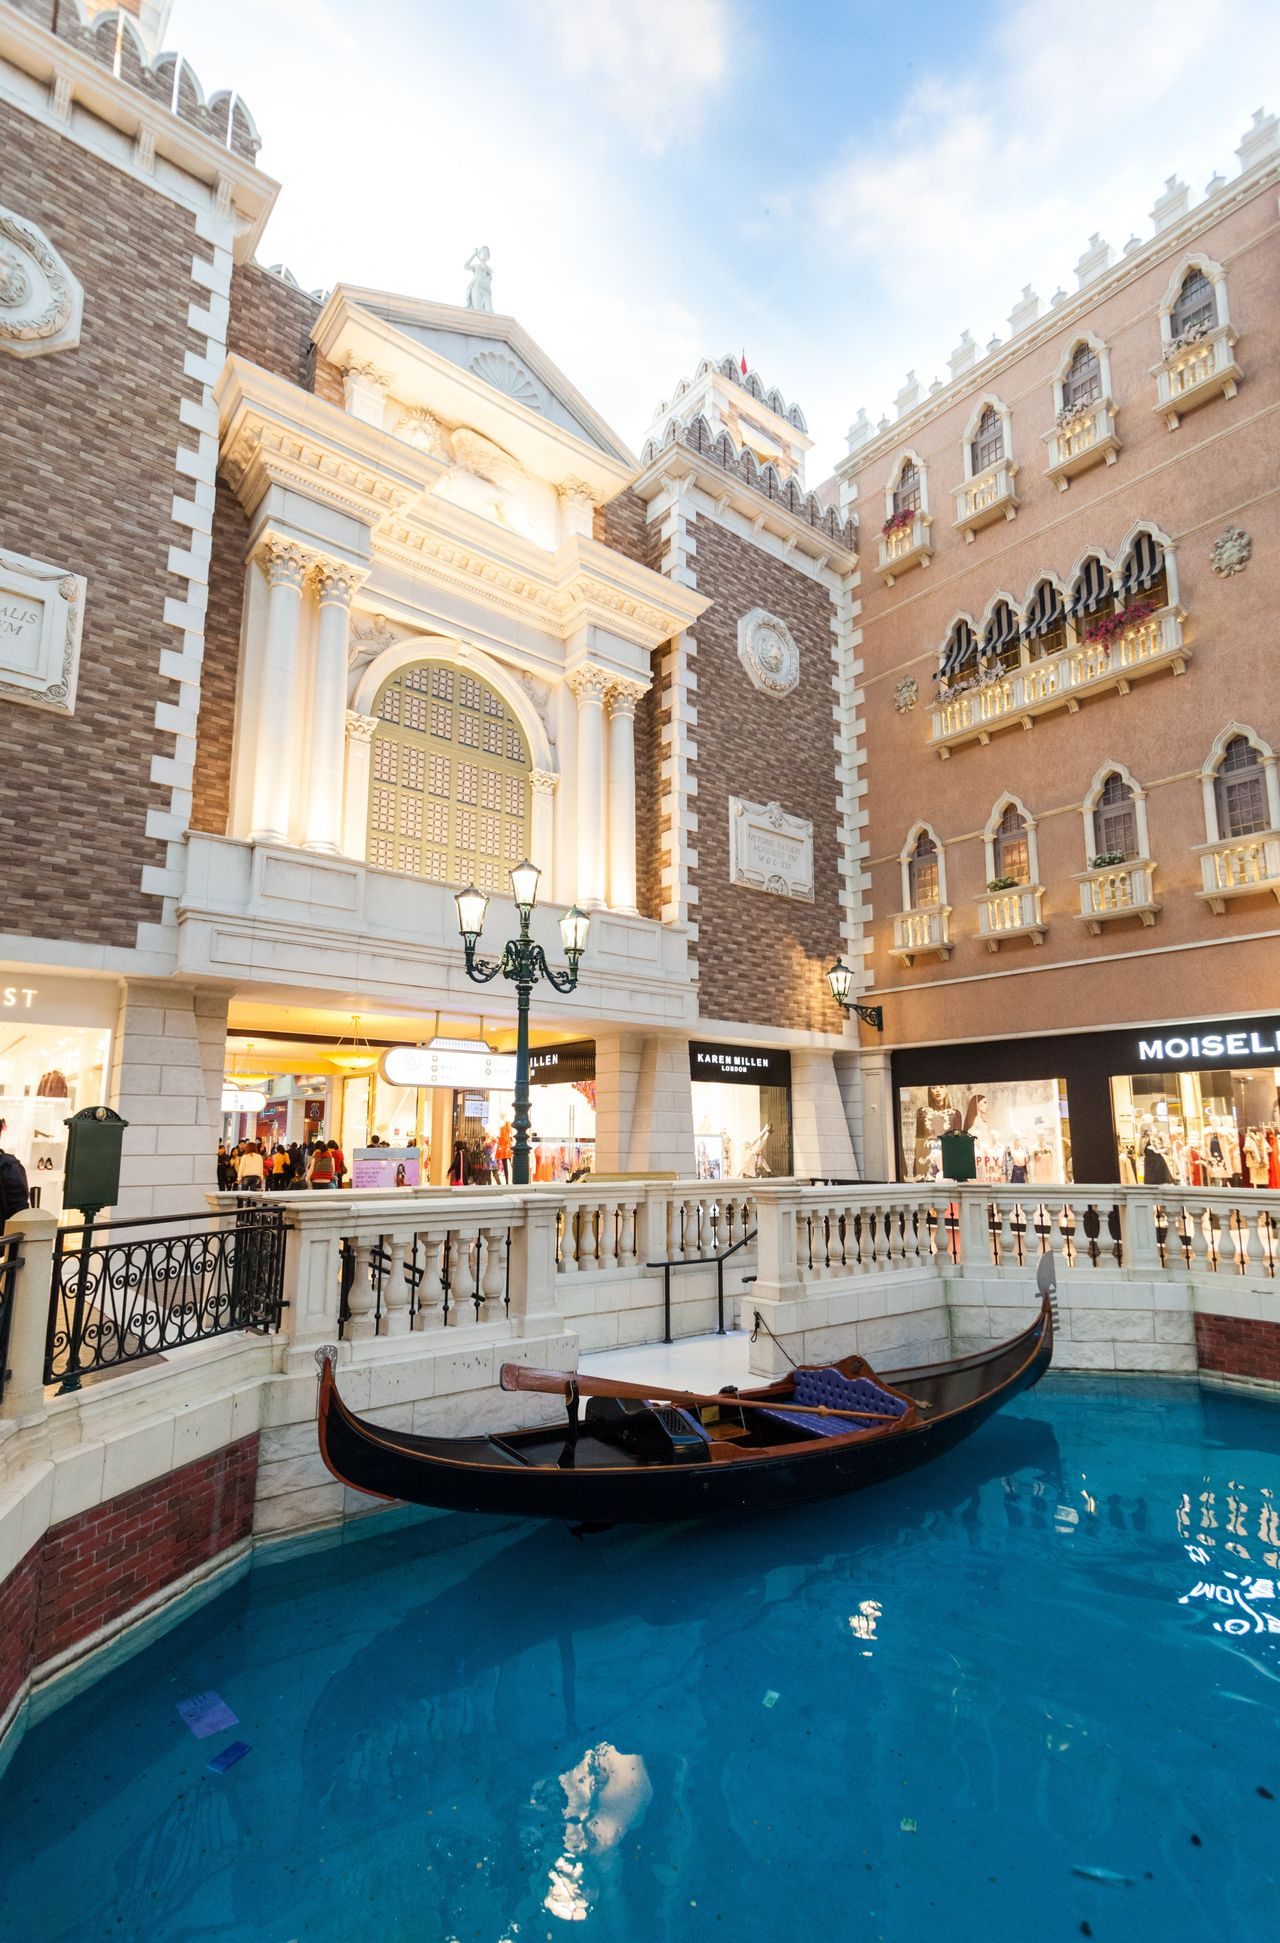 The Venetian Macao is a luxury hotel and casino resort in Macau owned by the American Las Vegas Sands company. Architecture Building Exterior Built Structure Casino Cotai CotaiStripMacau Cultures Day Gondola - Traditional Boat Hotel Interior Interior Design Macao  Macao China Macau Macau, China Outdoors Shopping Shopping ♡ Sky The Venetian The Venetian Macau Resort Hotel Travel Destinations Venetian Water